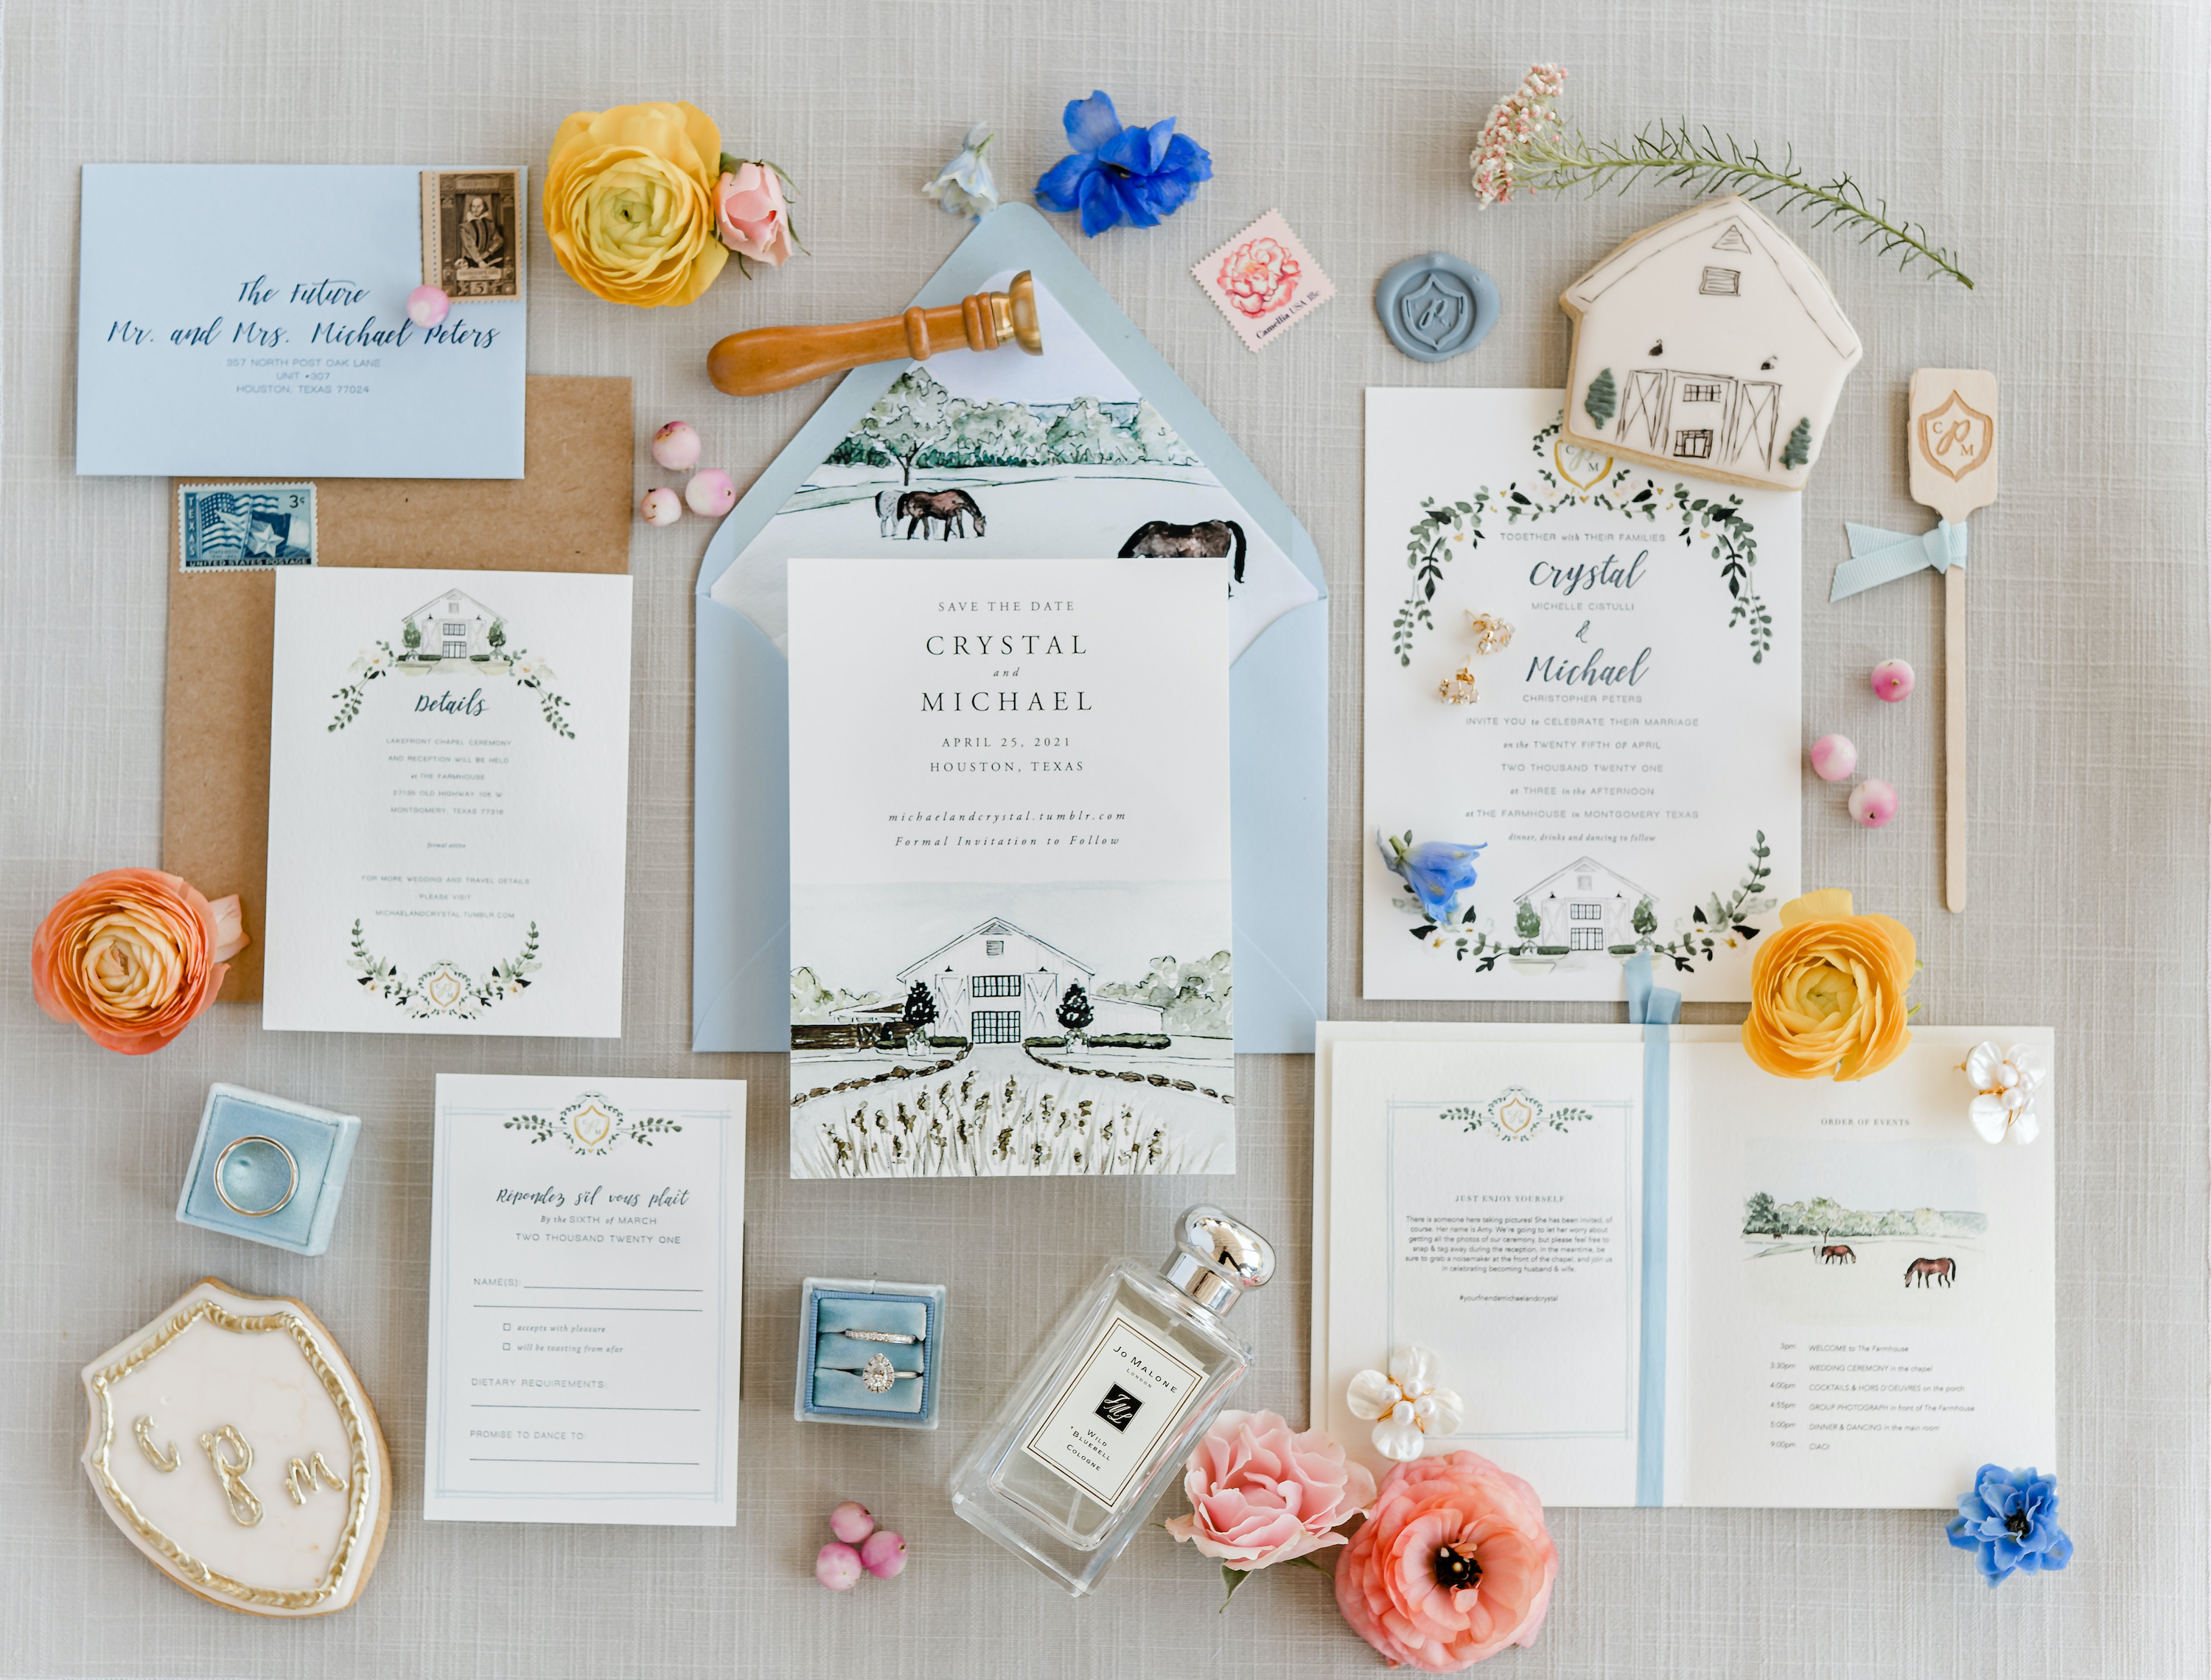 A very colorful flat lay for Crystal and Micheal's friendly wedding.